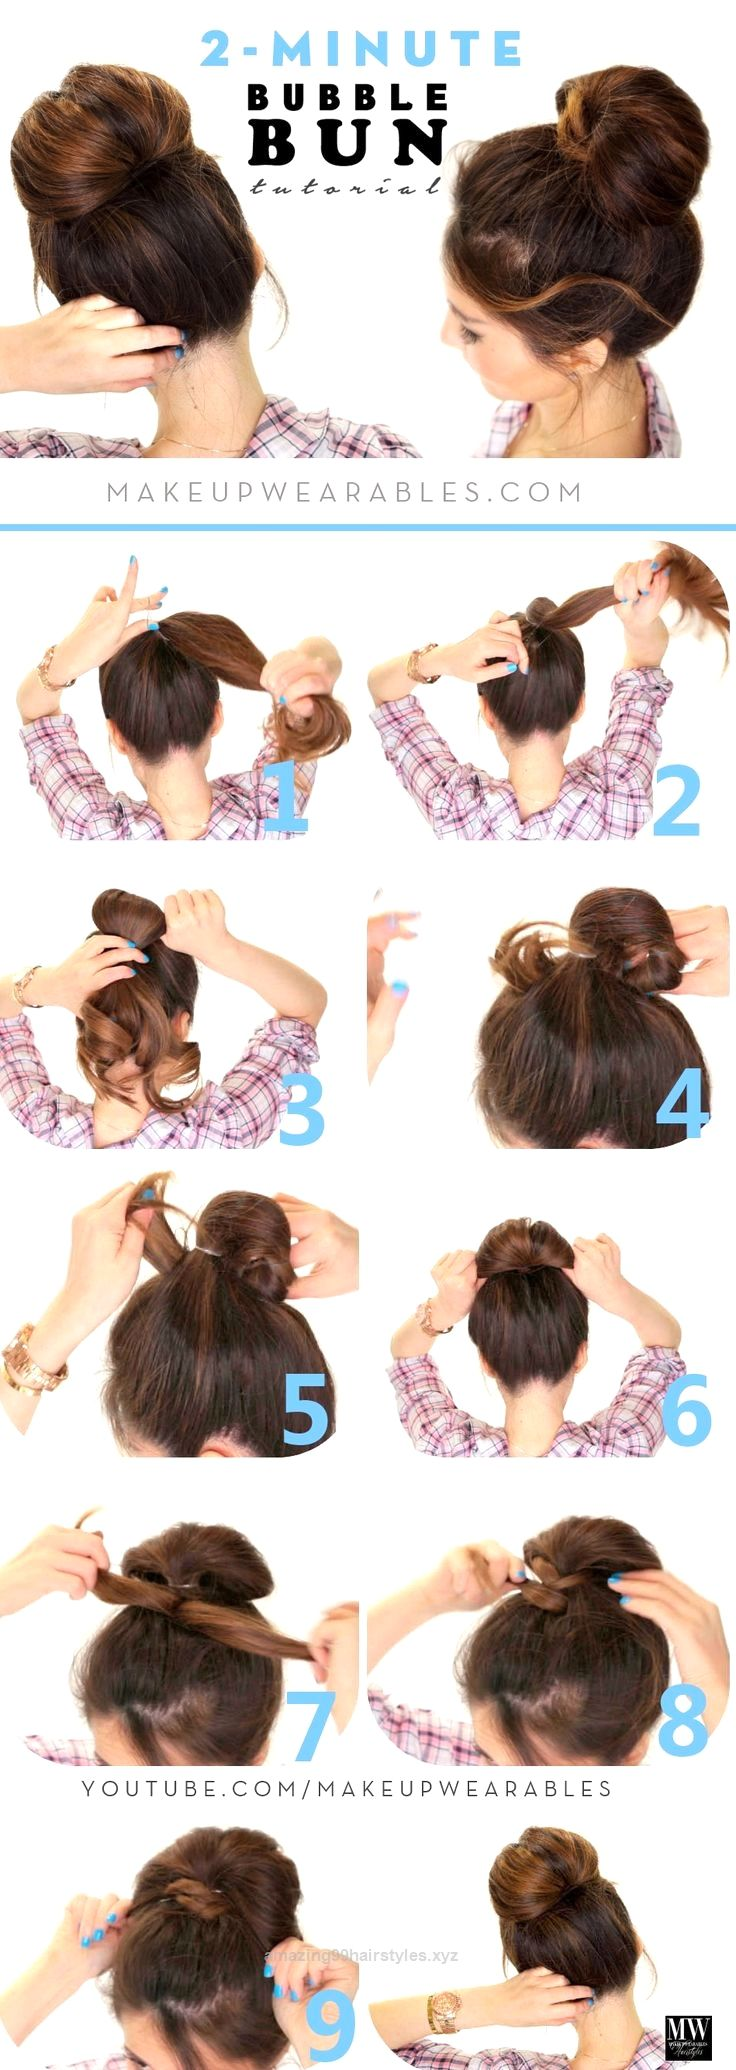 best hair images on pinterest braided hairstyles braided updo